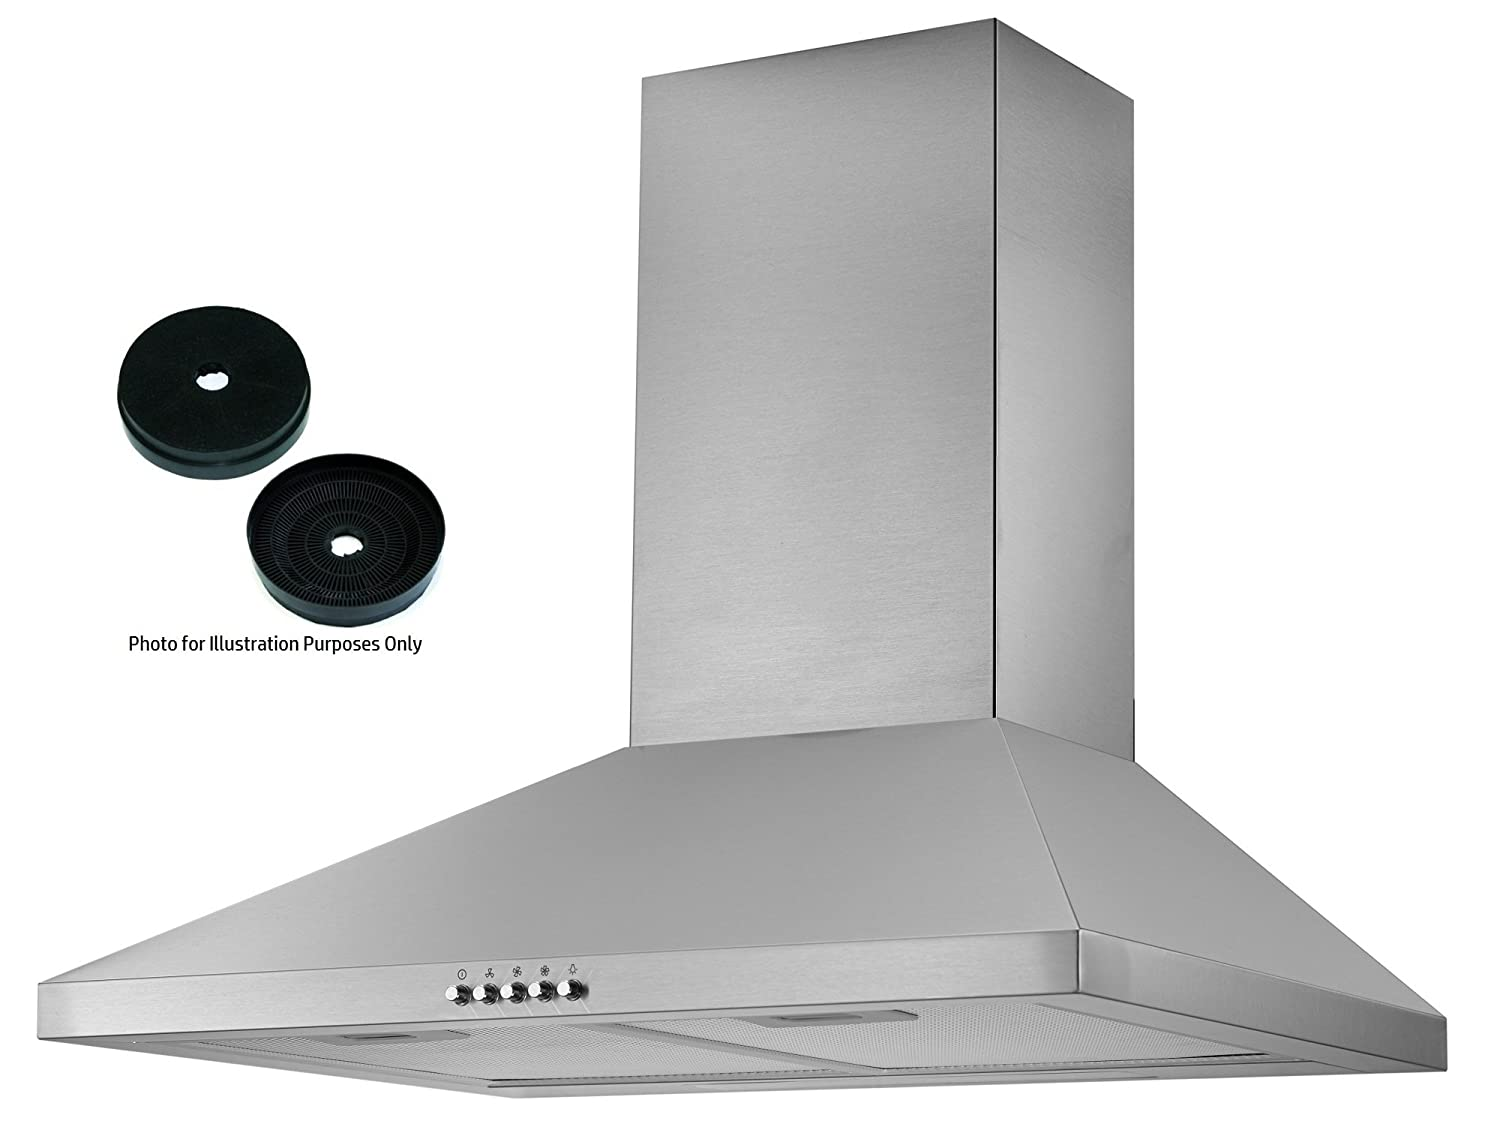 Cookology CMH605SS 60cm Chimney Cooker Hood In Stainless Steel | Kitchen  Extractor Fan | Recirculating Filters Included: Amazon.co.uk: Large  Appliances